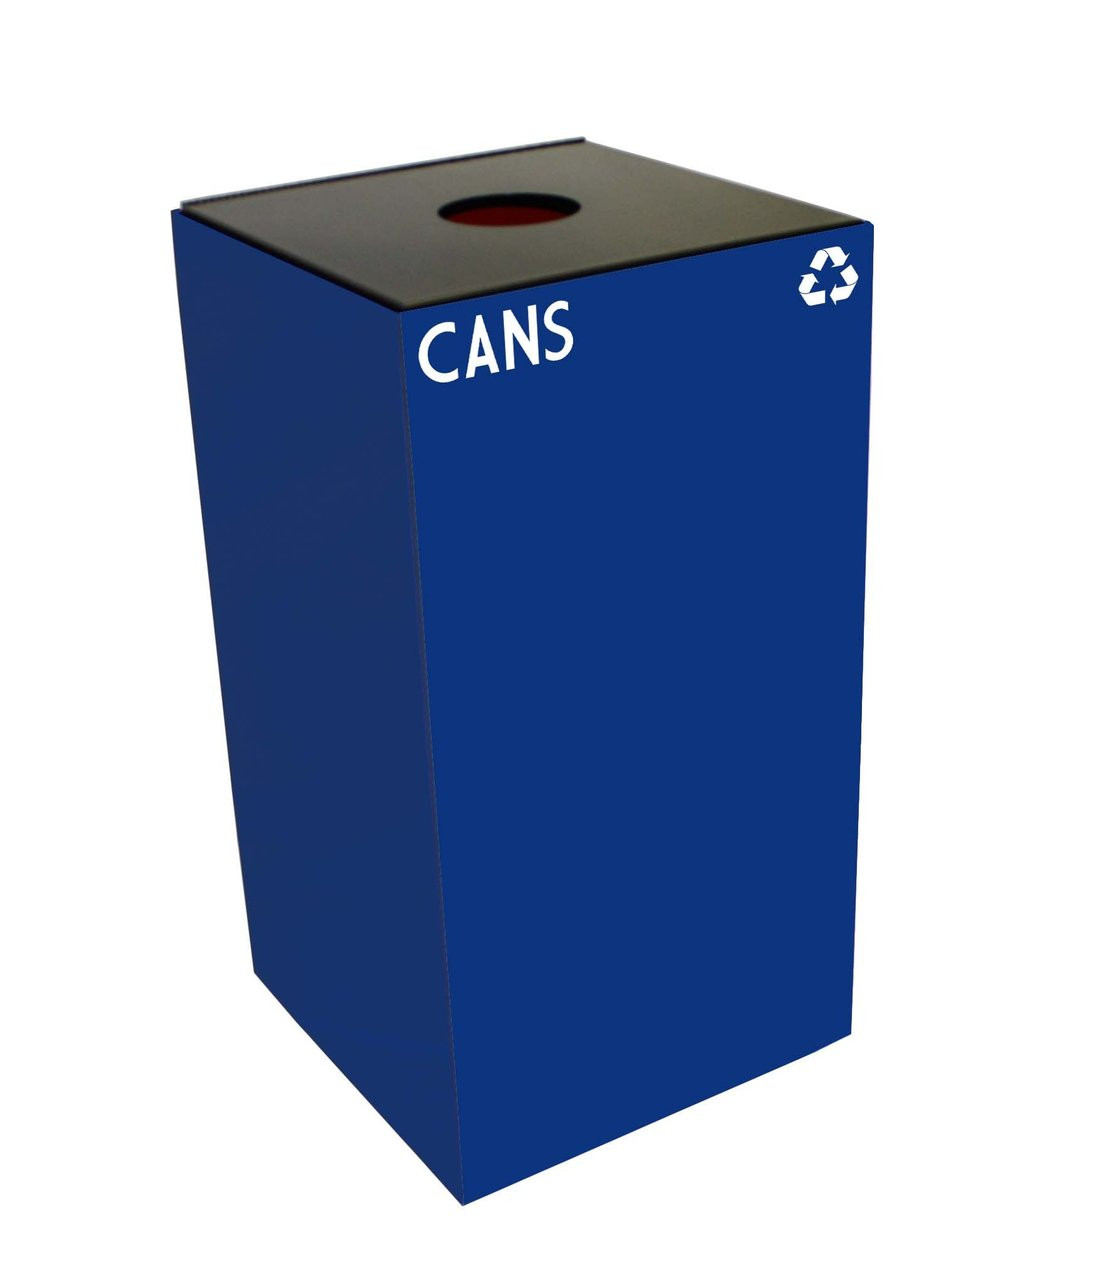 28 Gallon Metal Geocube 28GC0 Recycling Bin Receptacle for Cans